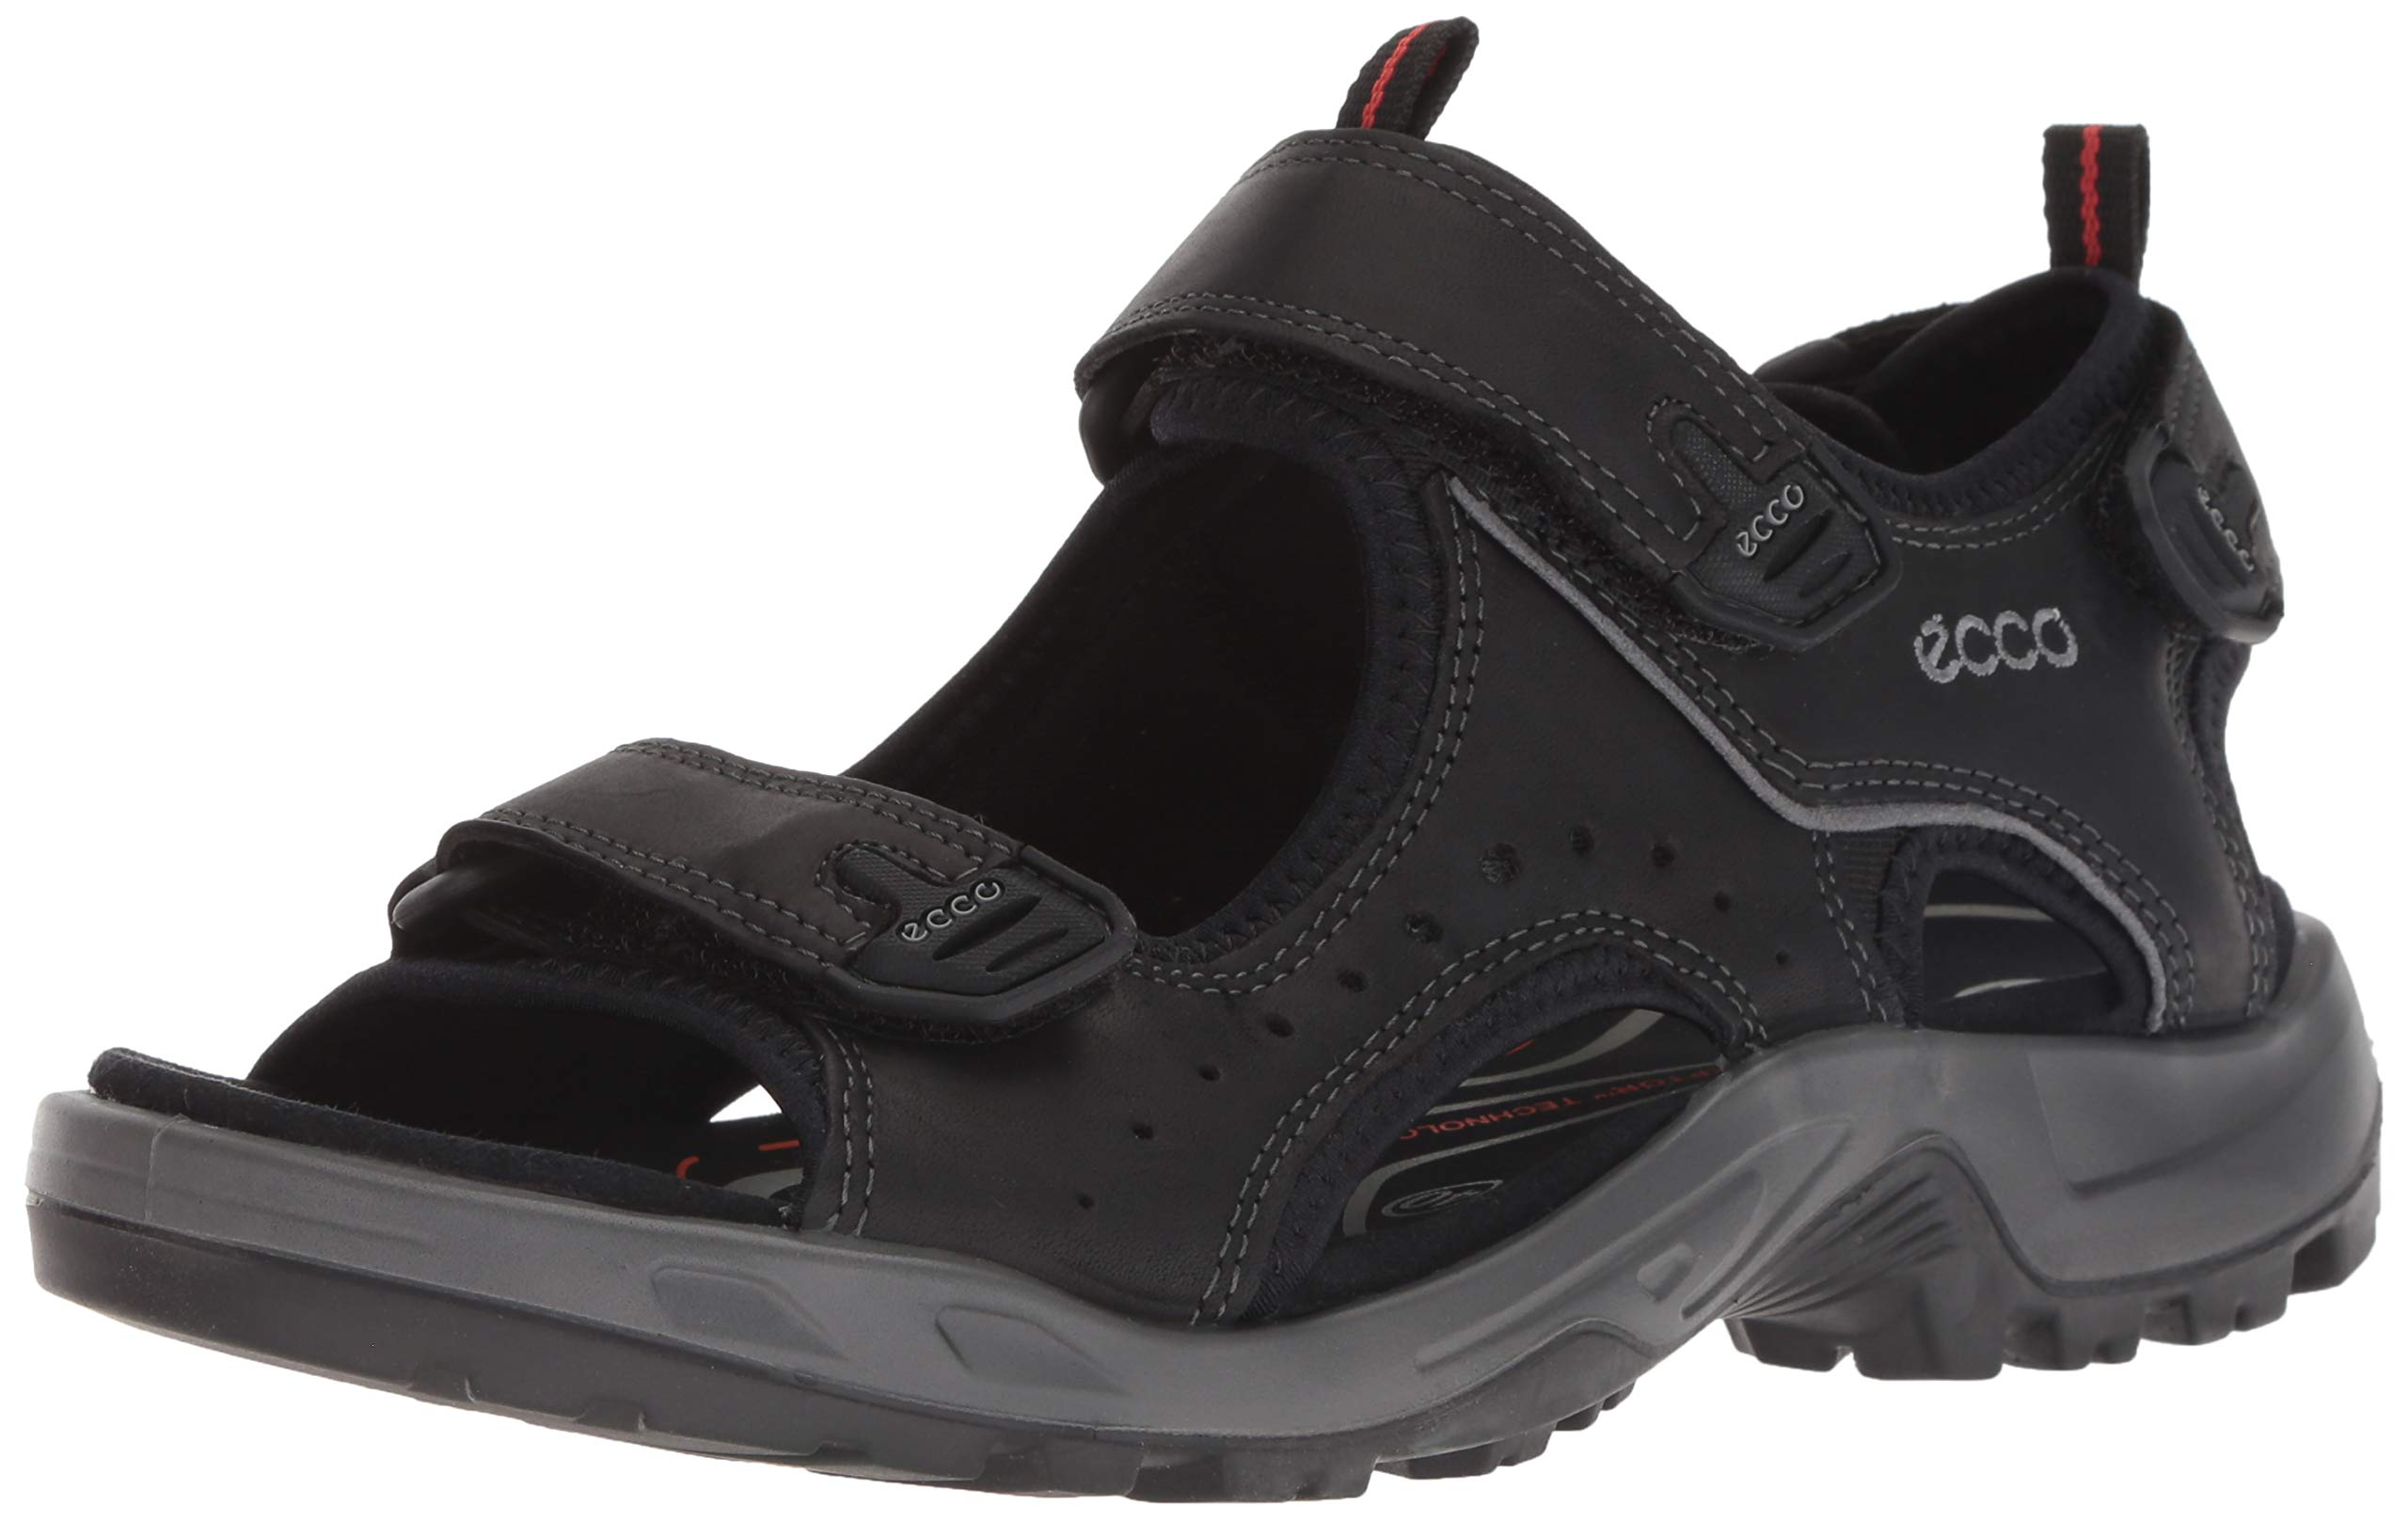 ECCO Men's Yucatan Sport Sandal, Black, 43 EU (US Men's 9-9.5 M)